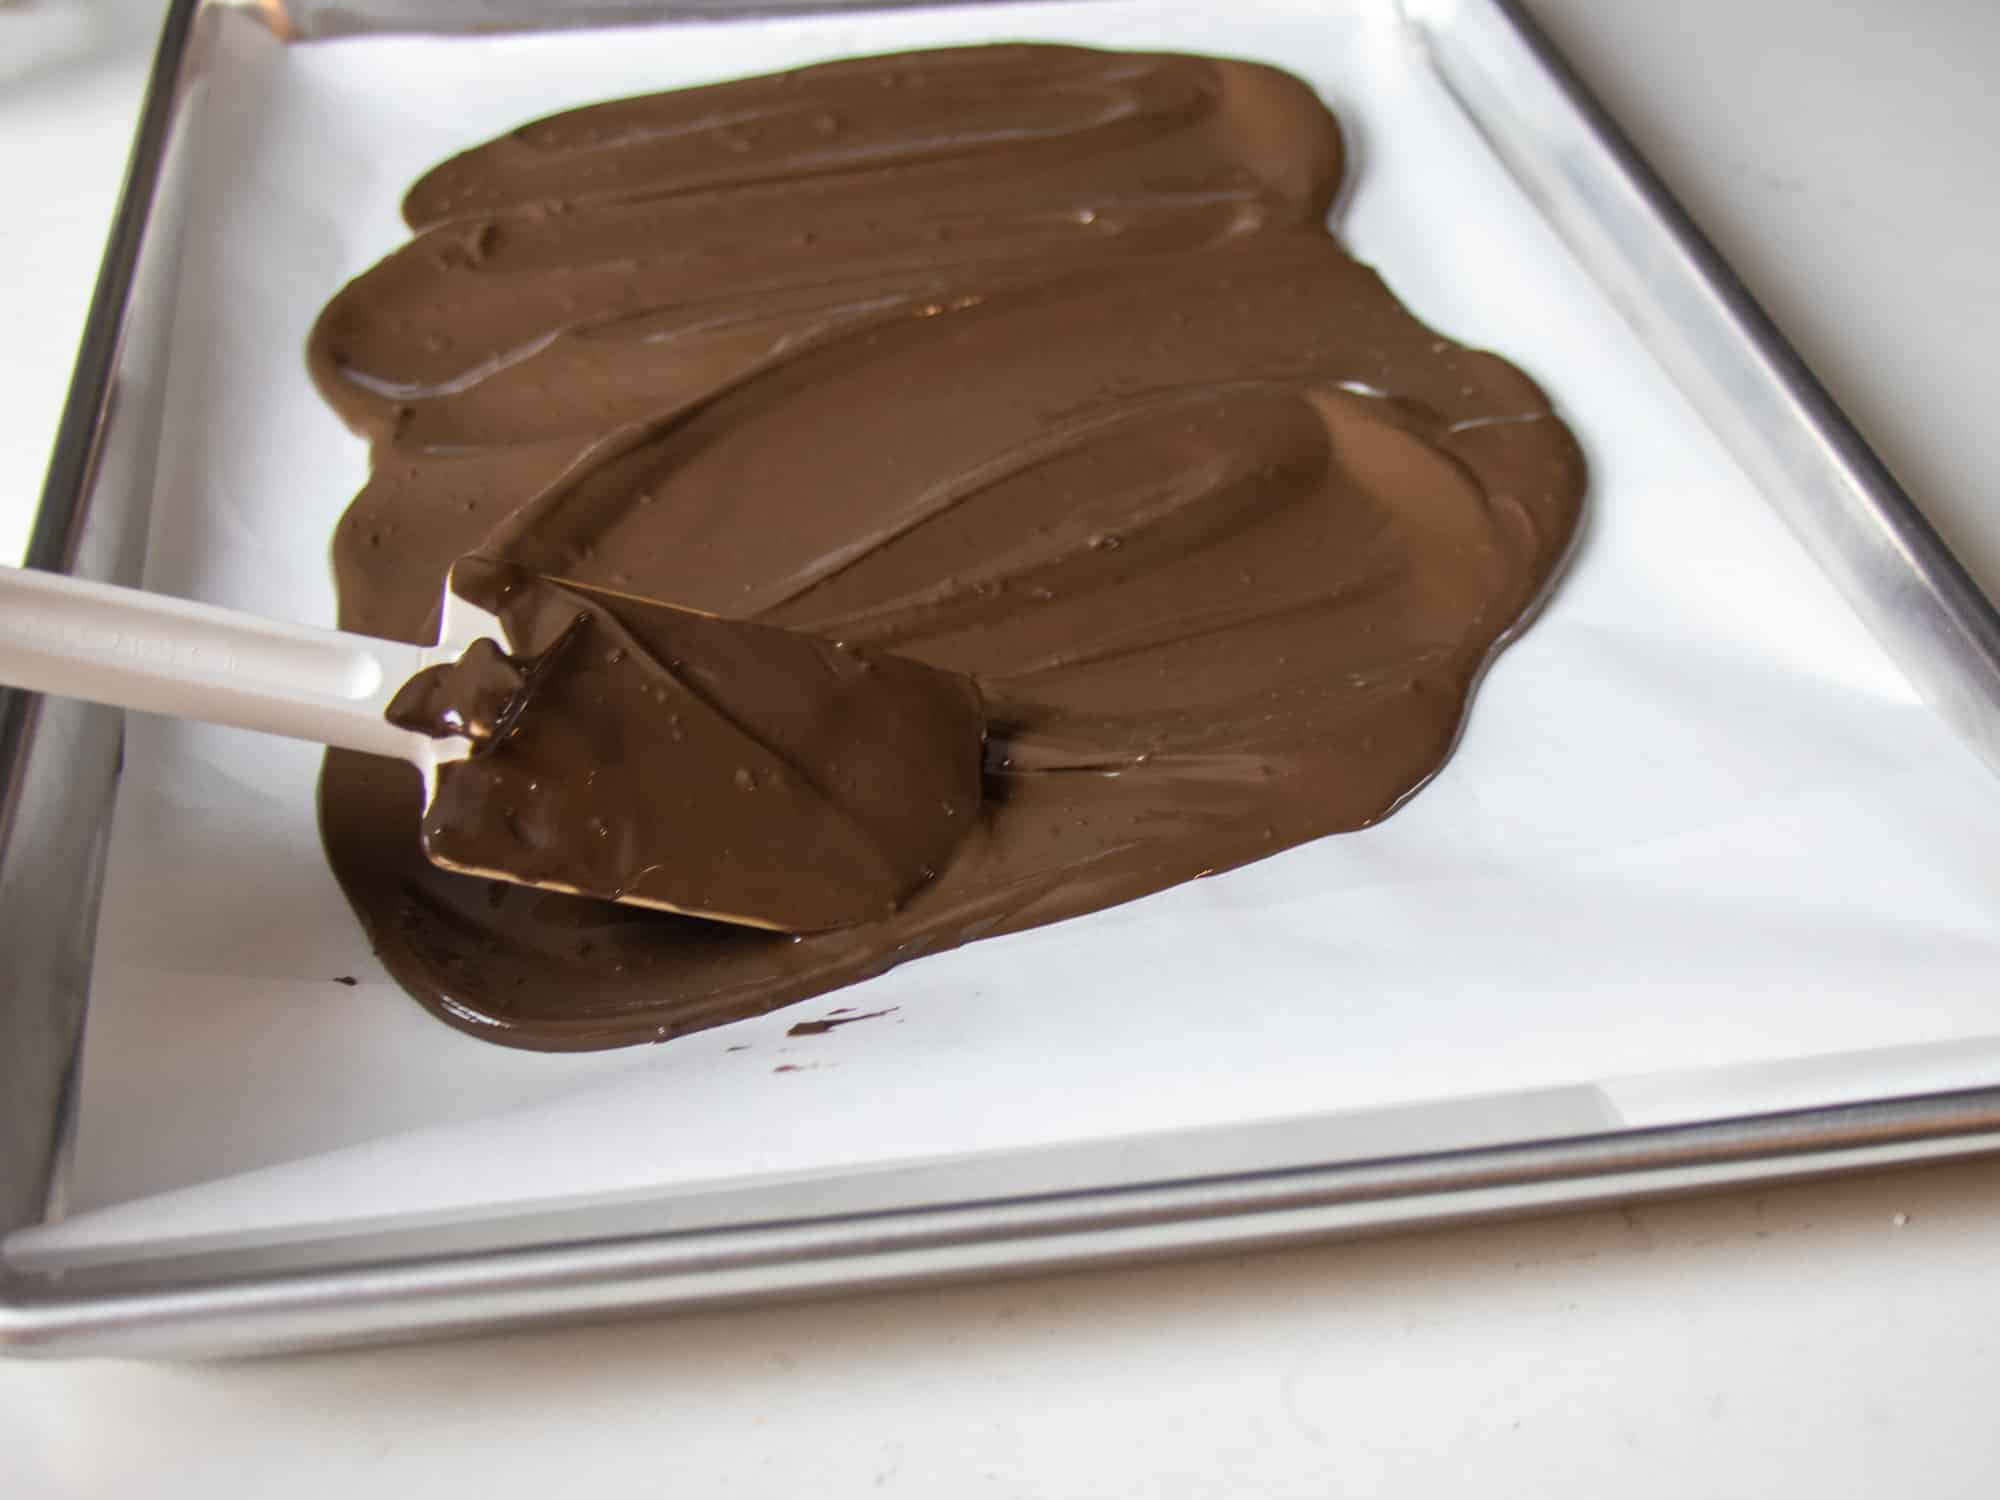 Spread the melted dark chocolate on a baking lined with parchment paper.